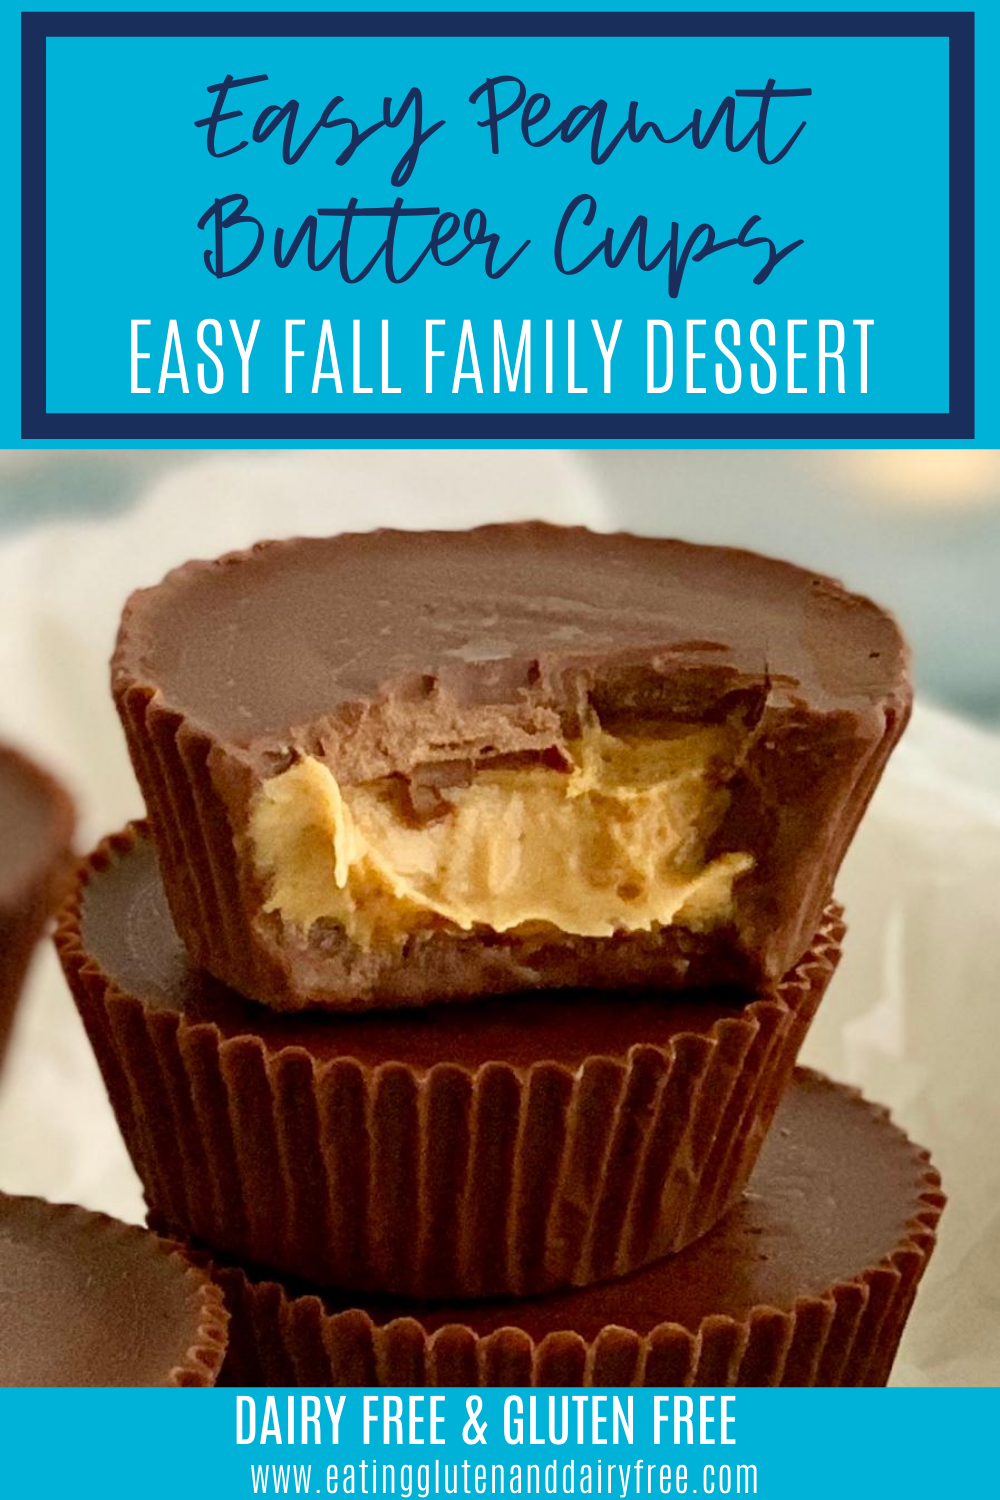 Homemade peanut butter cups stacked on top of each other with a bite taken out of the top one.